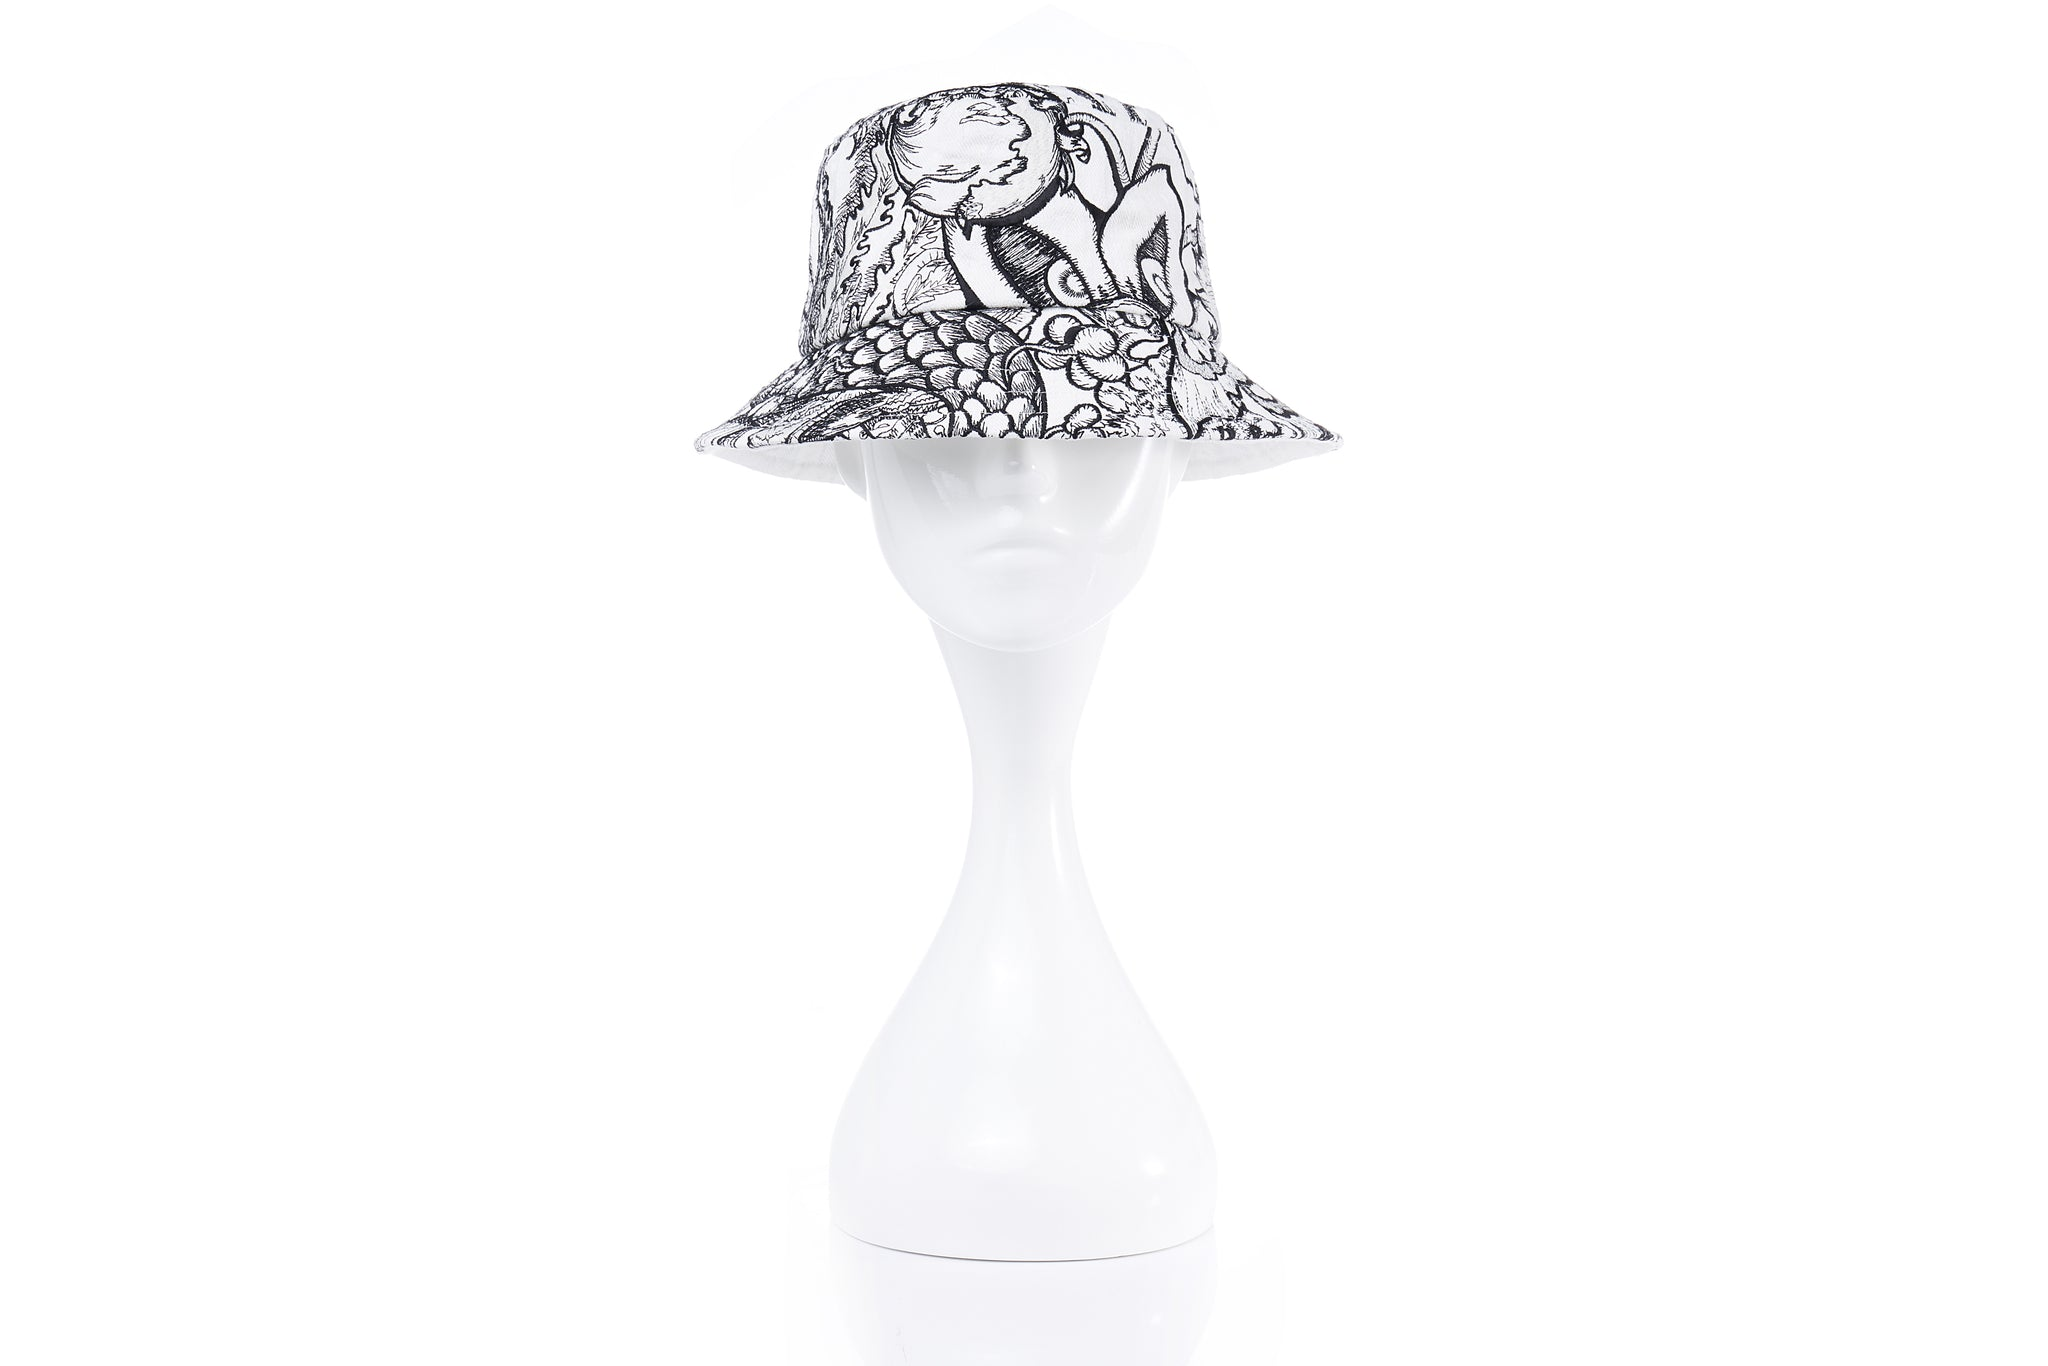 Van Dusen Garden Embroidery Bucket Hat Small Brim Laurence And Chico